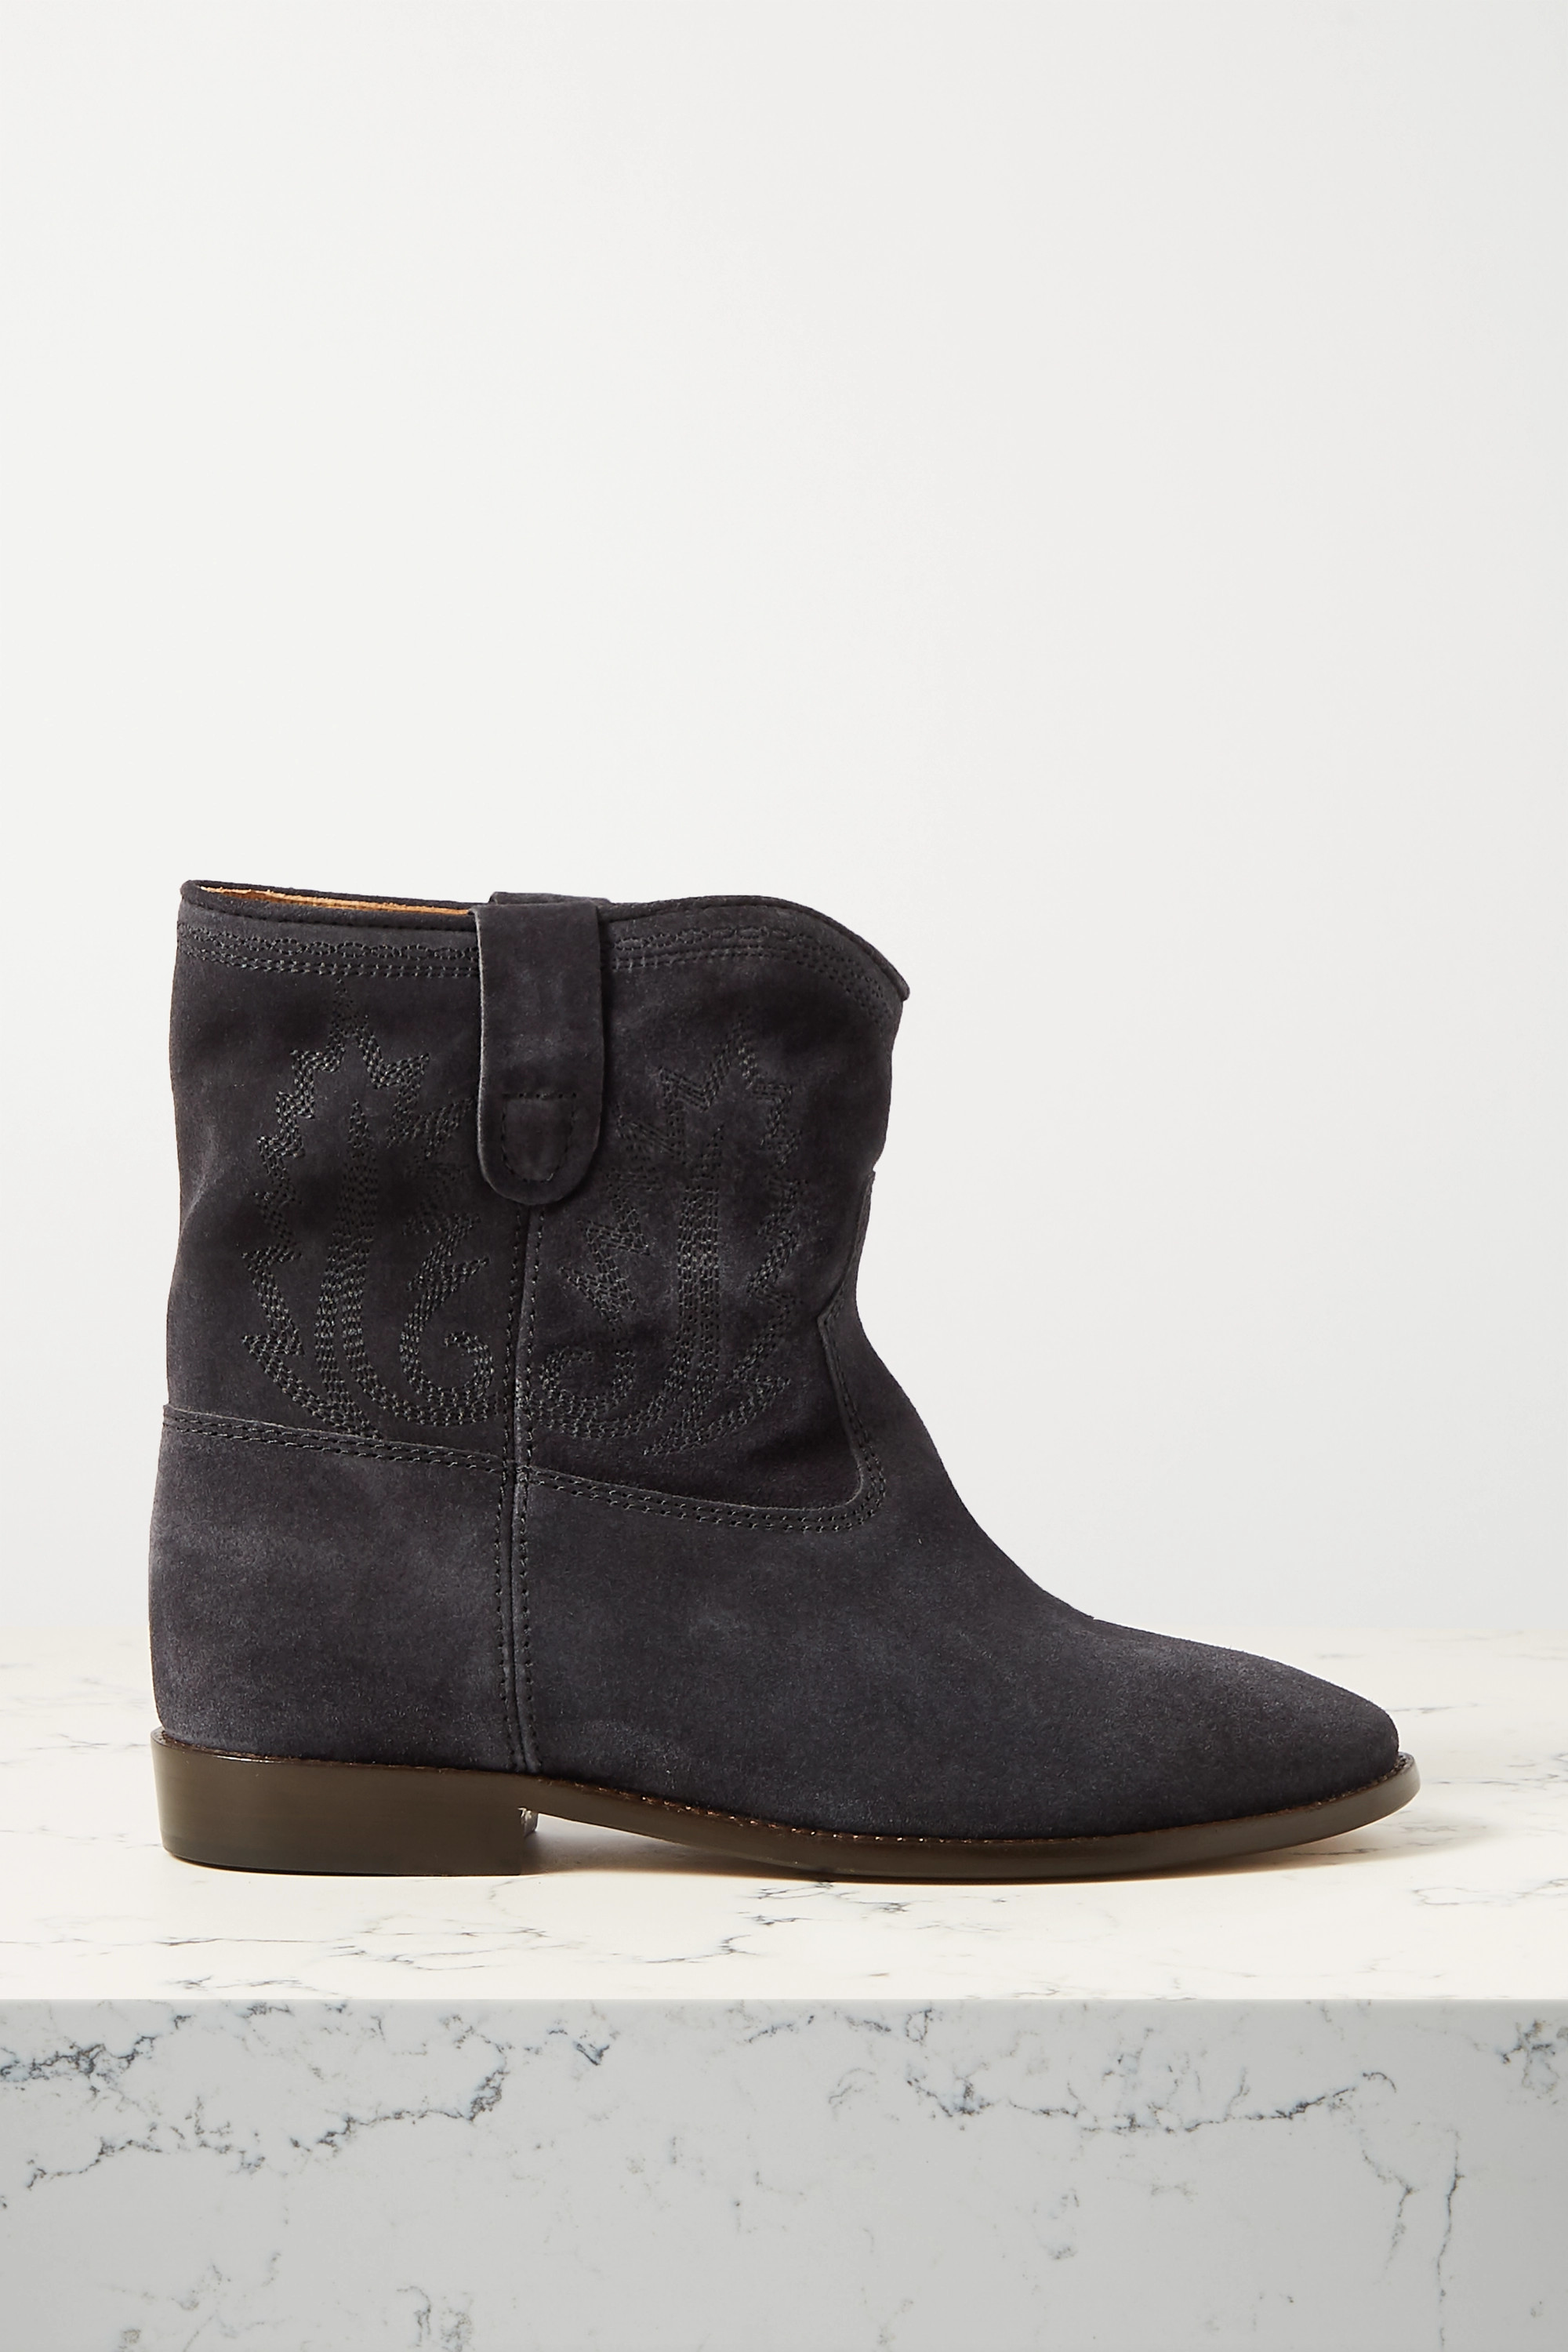 Charcoal Crisi embroidered suede ankle